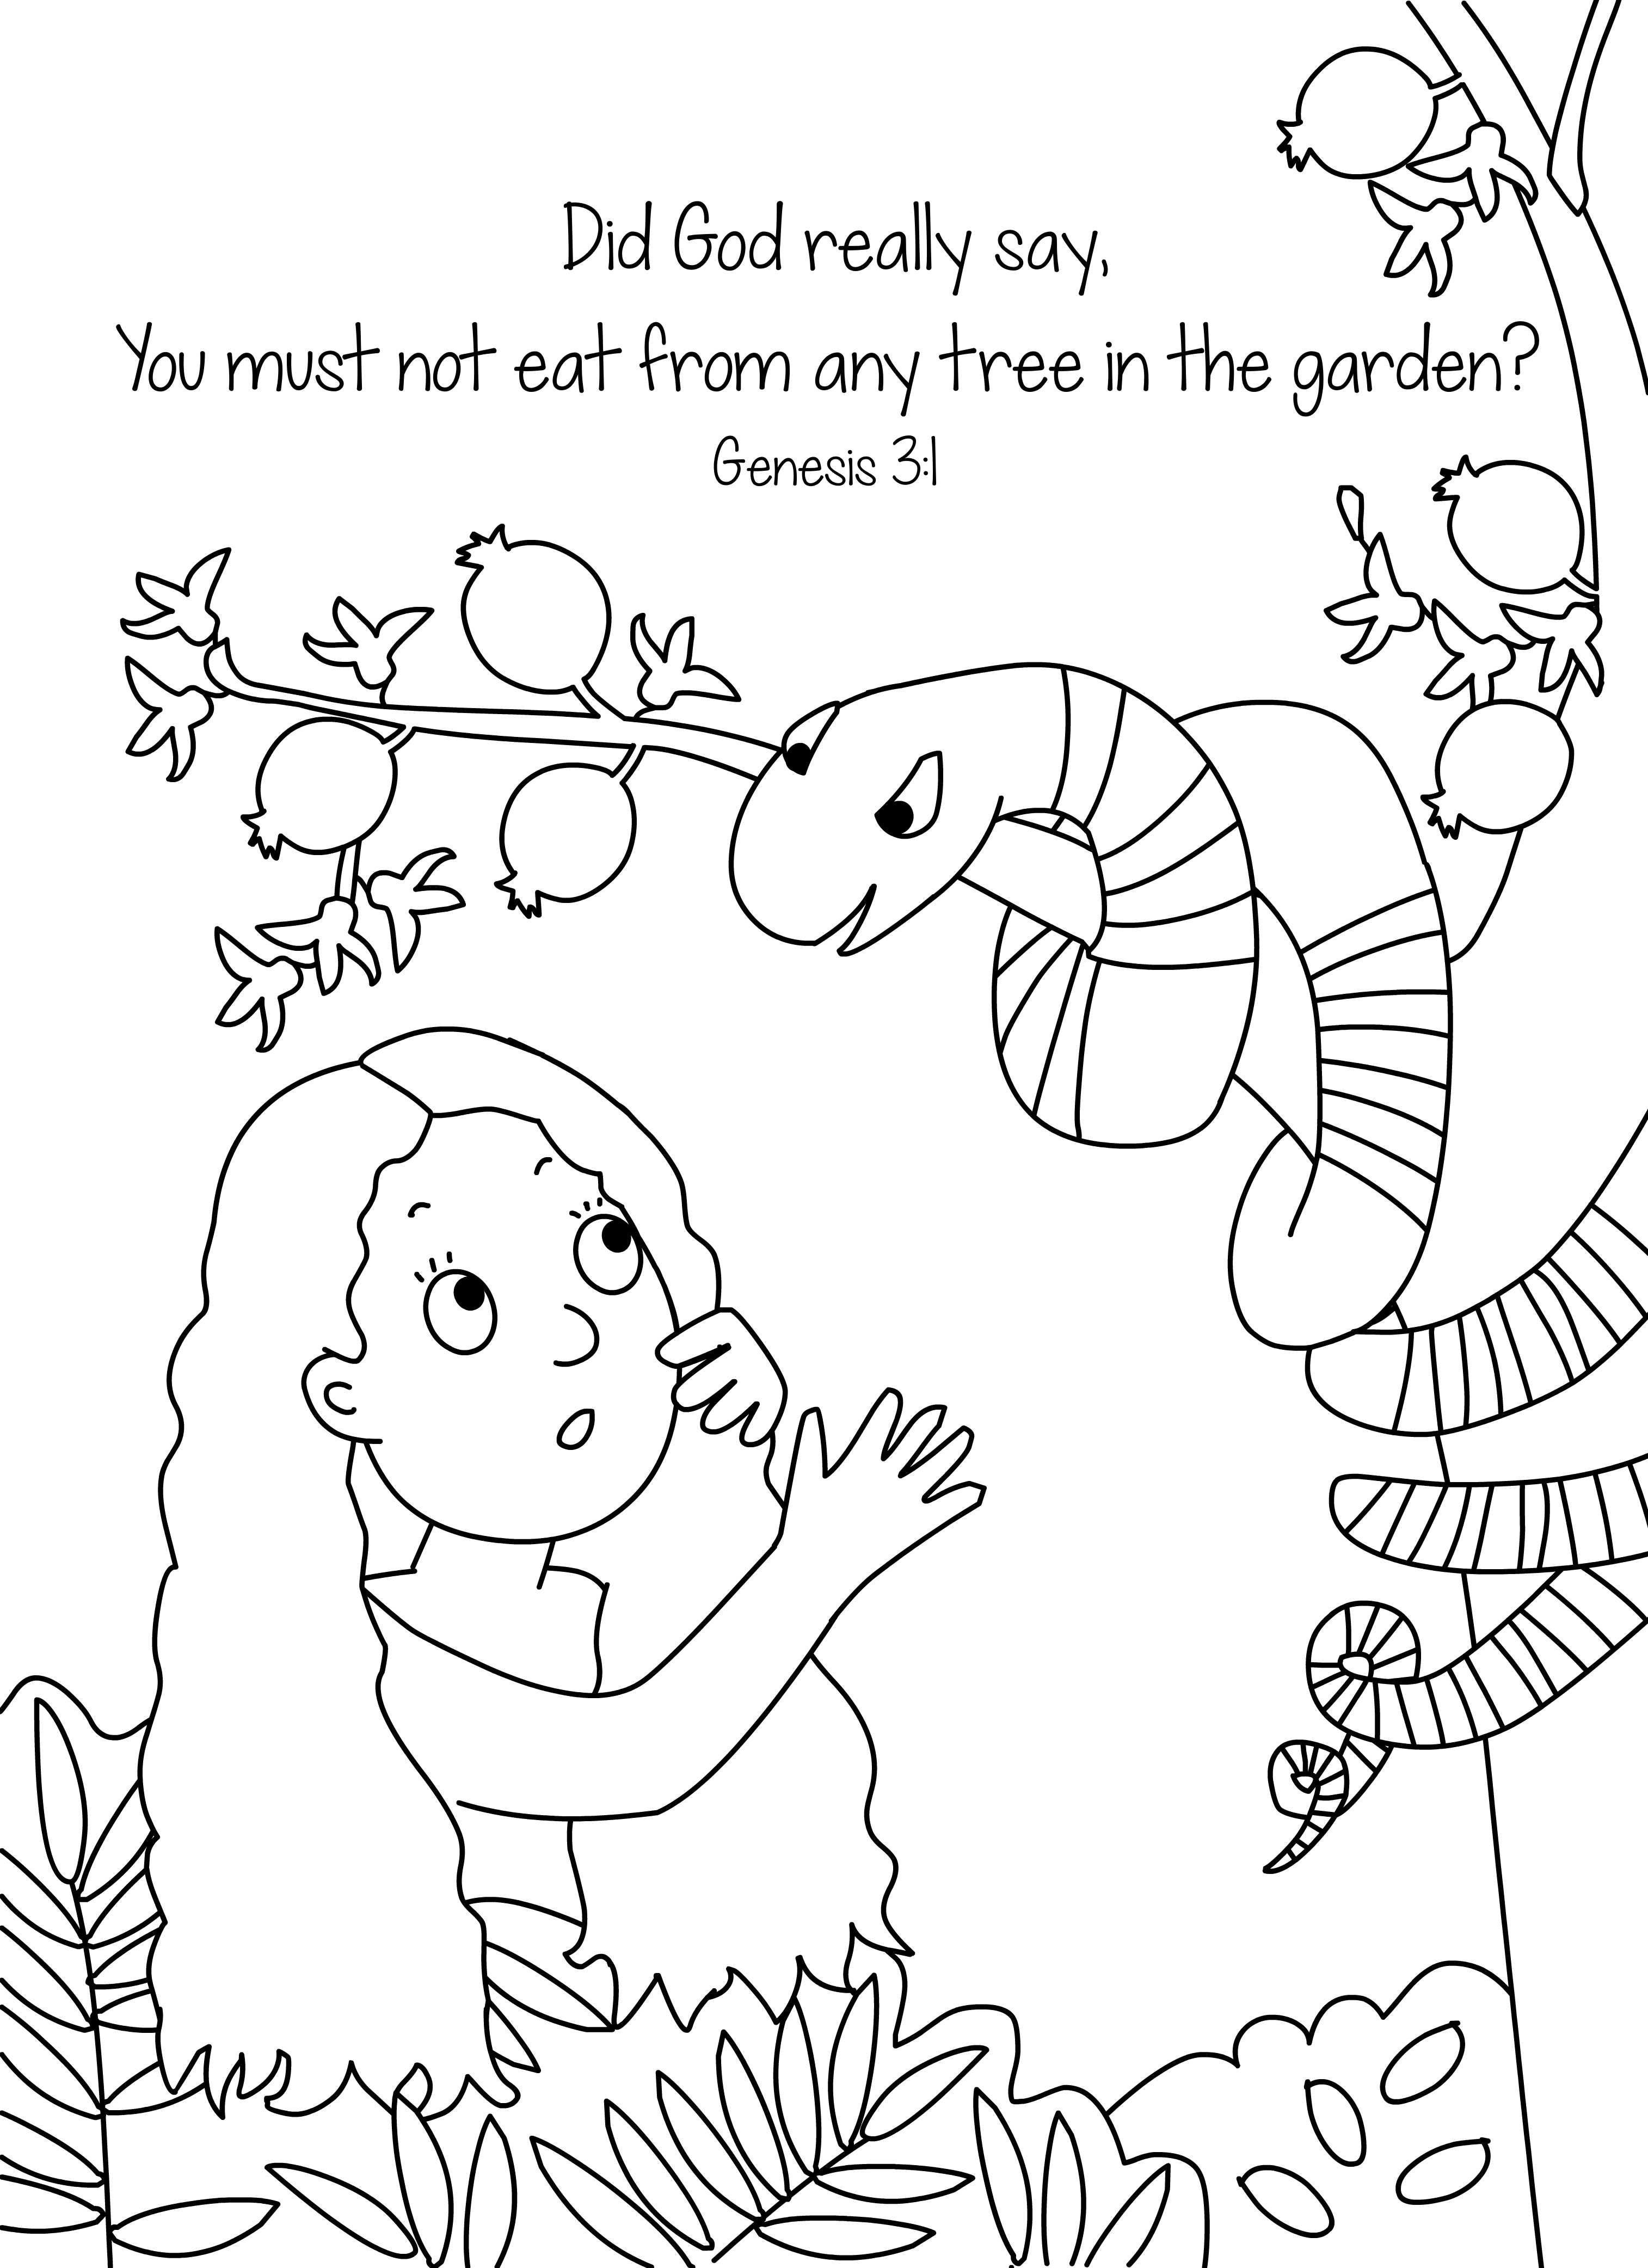 Top 25 FreePrintable Adam And Eve Coloring Pages Online | 4167x3028